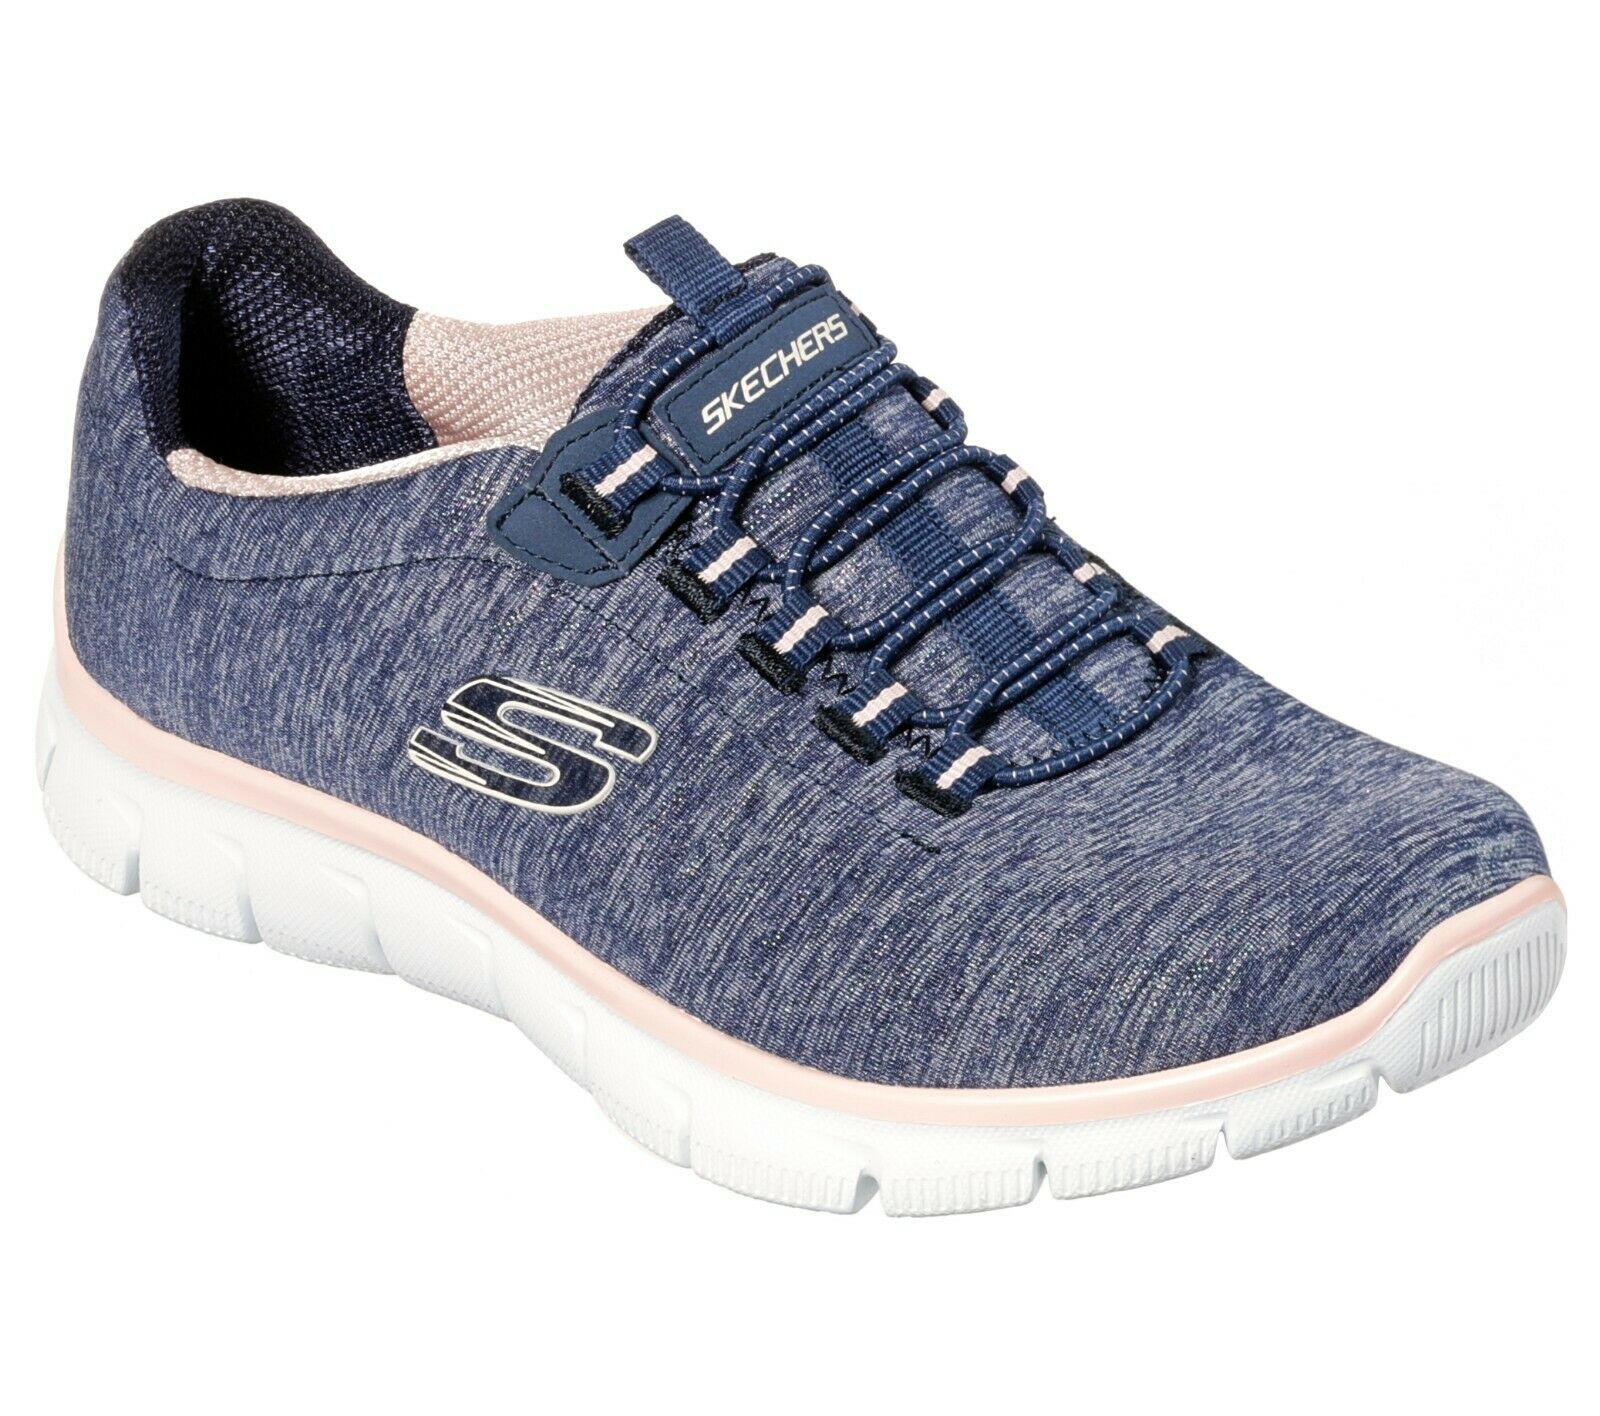 Skechers femmes relaxed fit  empire-see ya, 12808 nvcl sport